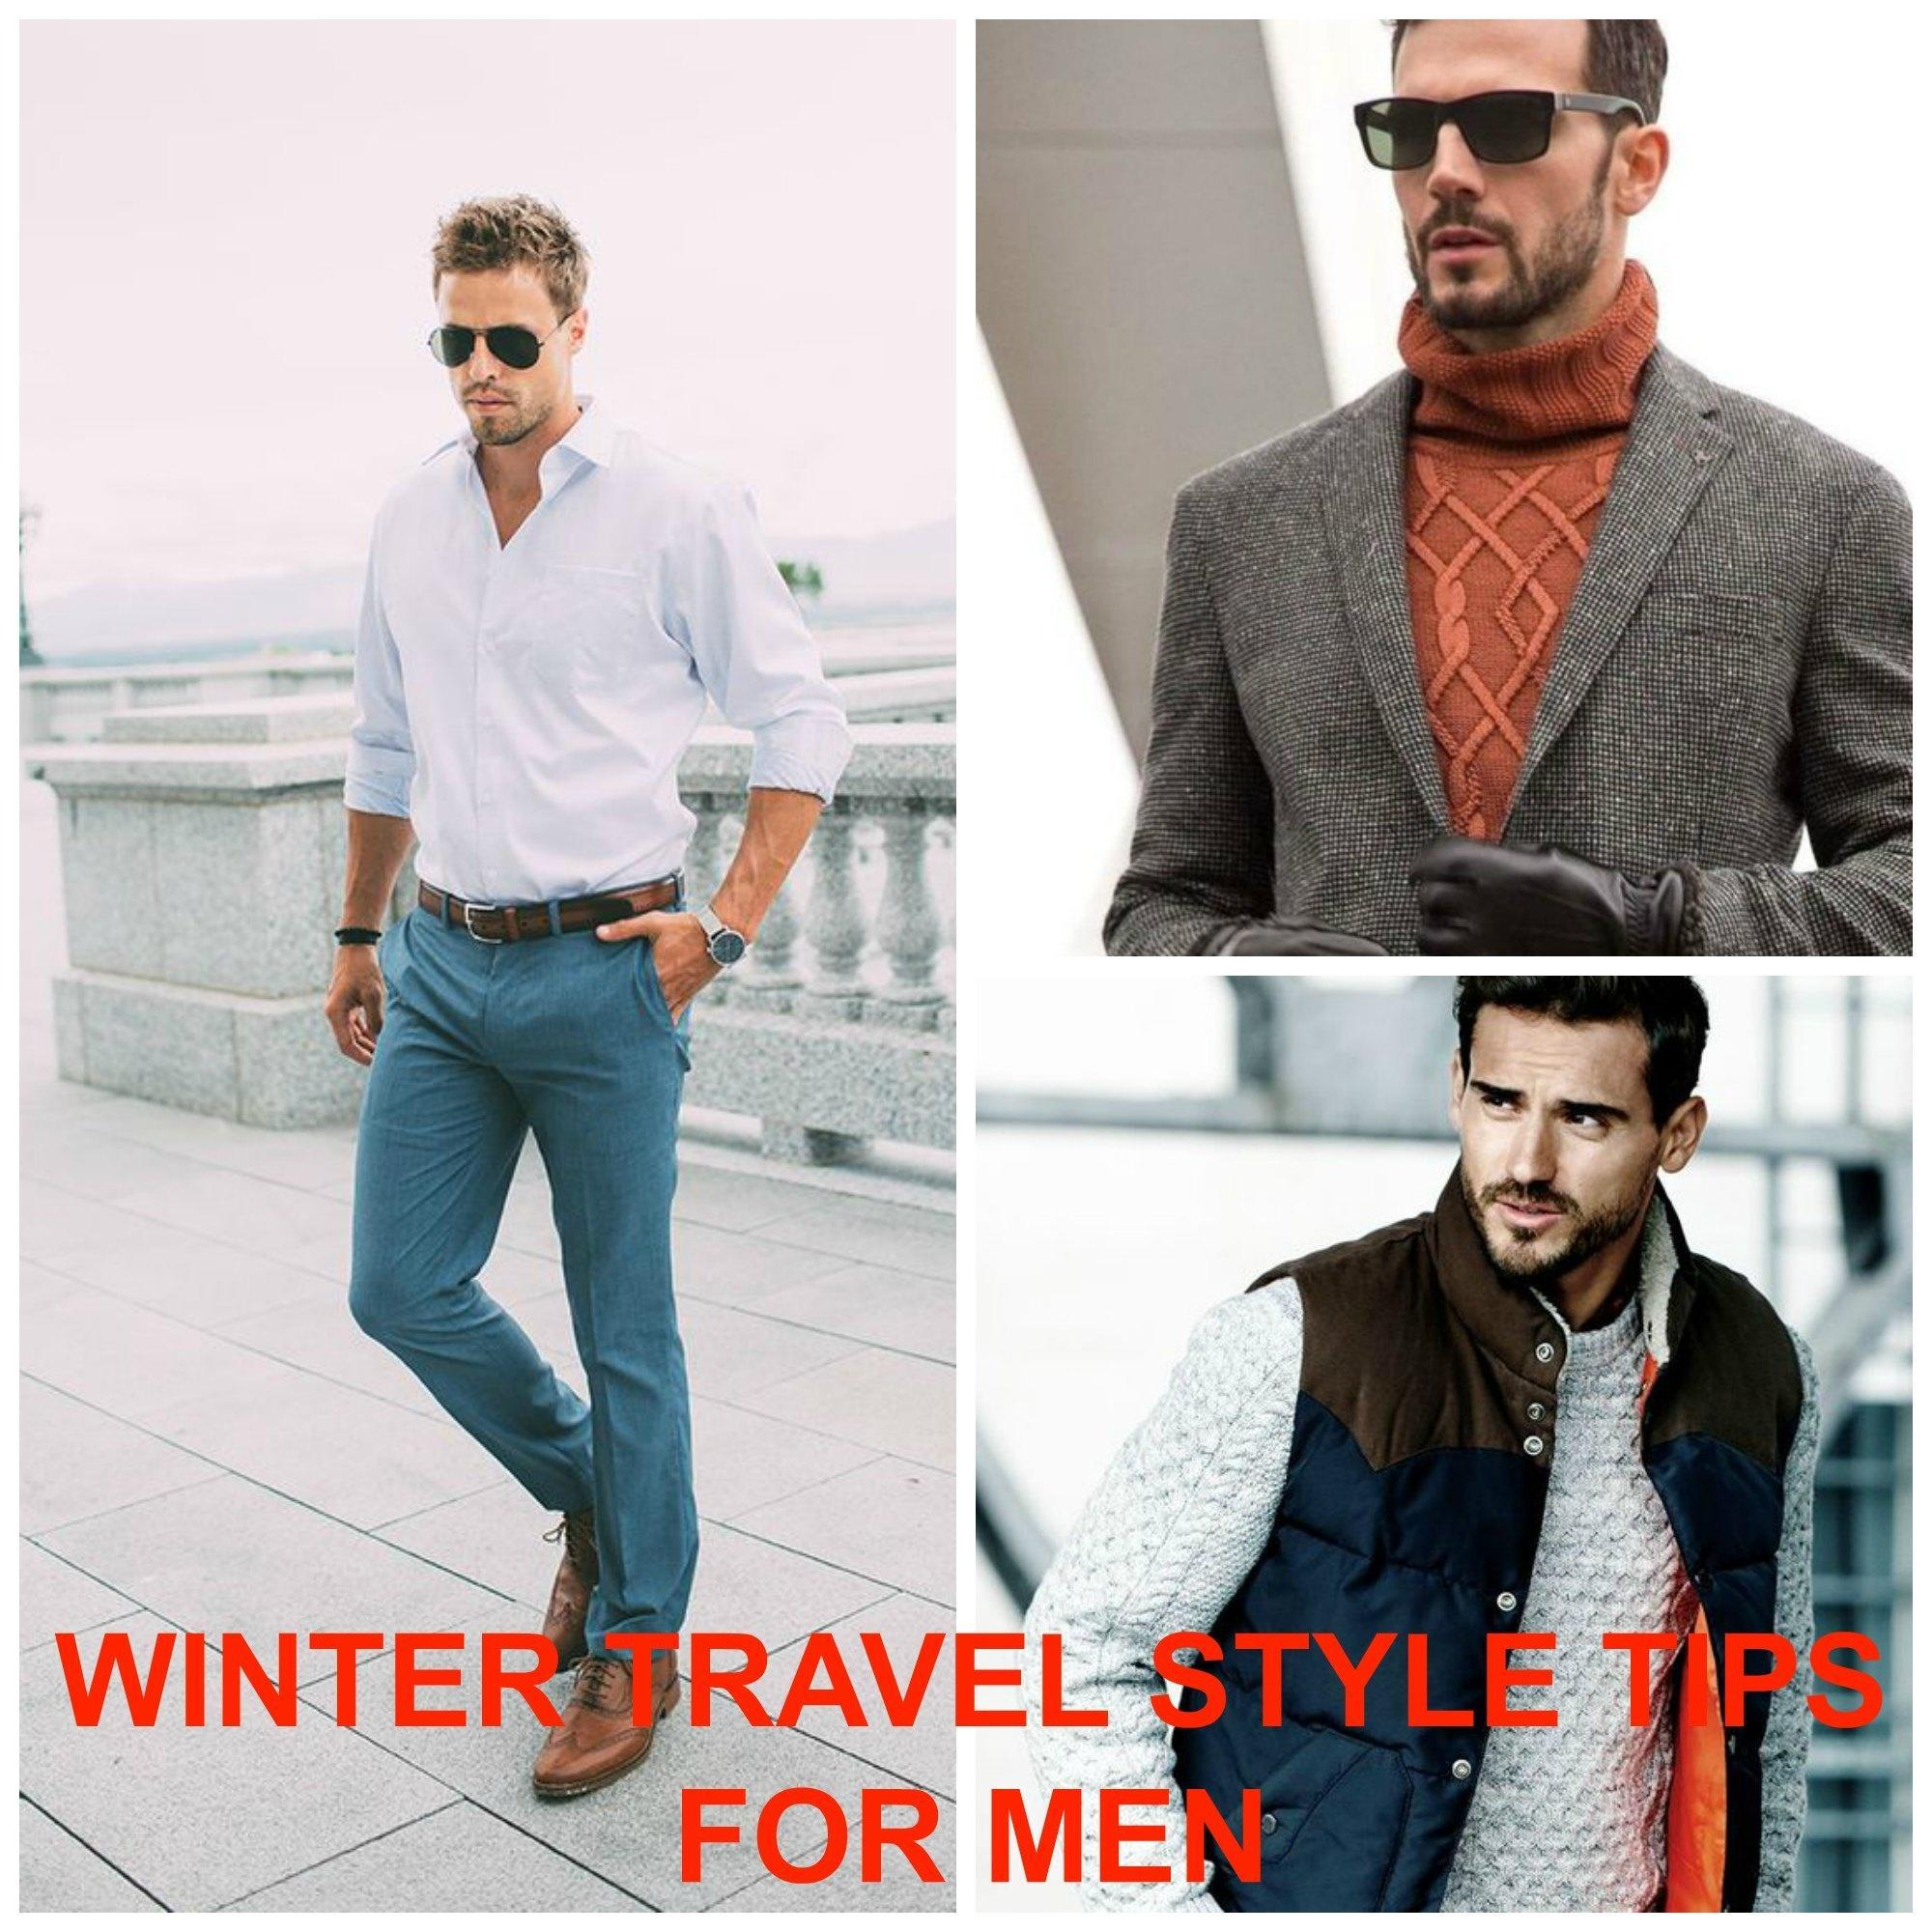 18 Winter Travel Outfit Ideas For Men \u2013 Travel Style Tips